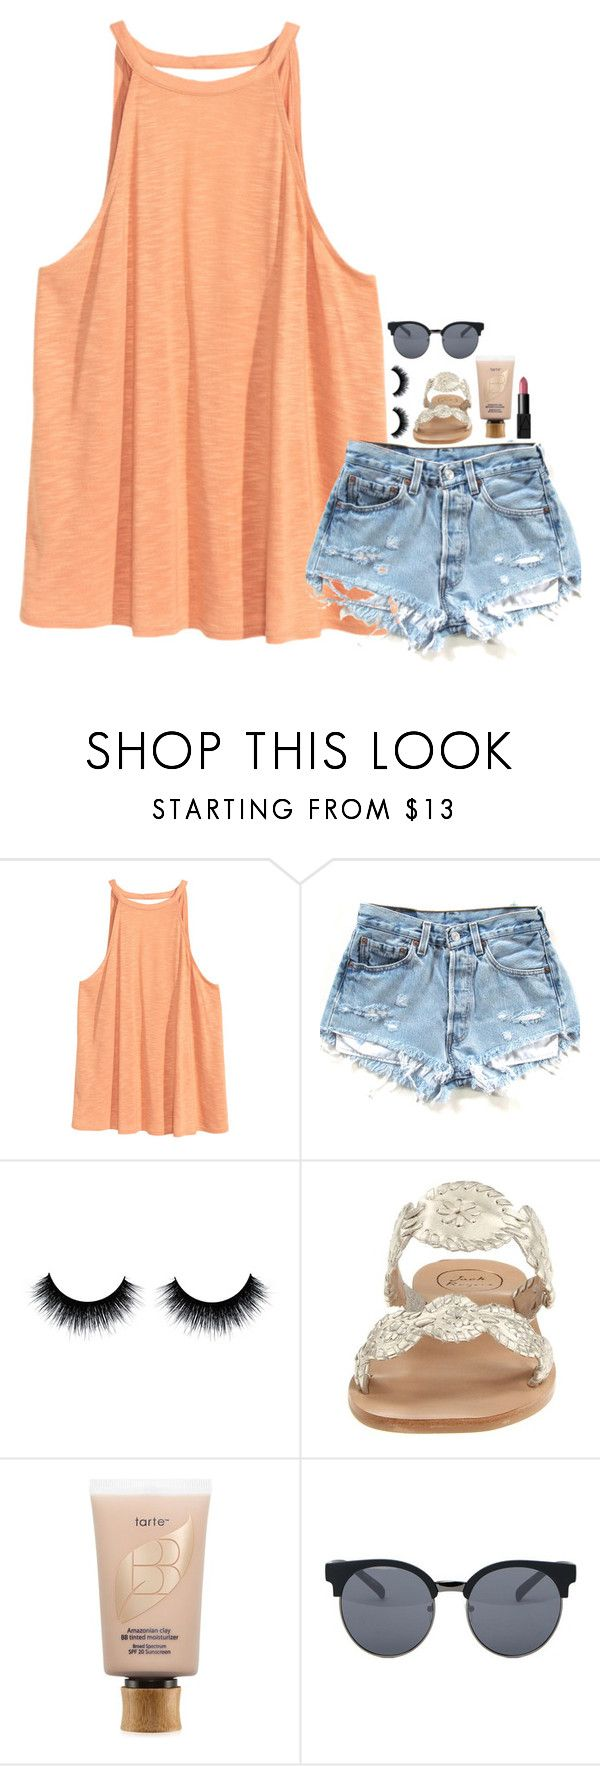 """""""Follow my main snapchat: sydthe_squidd"""" by mylifeassyd ❤ liked on Polyvore featuring H&M, Jack Rogers, tarte, Quay and NARS Cosmetics"""